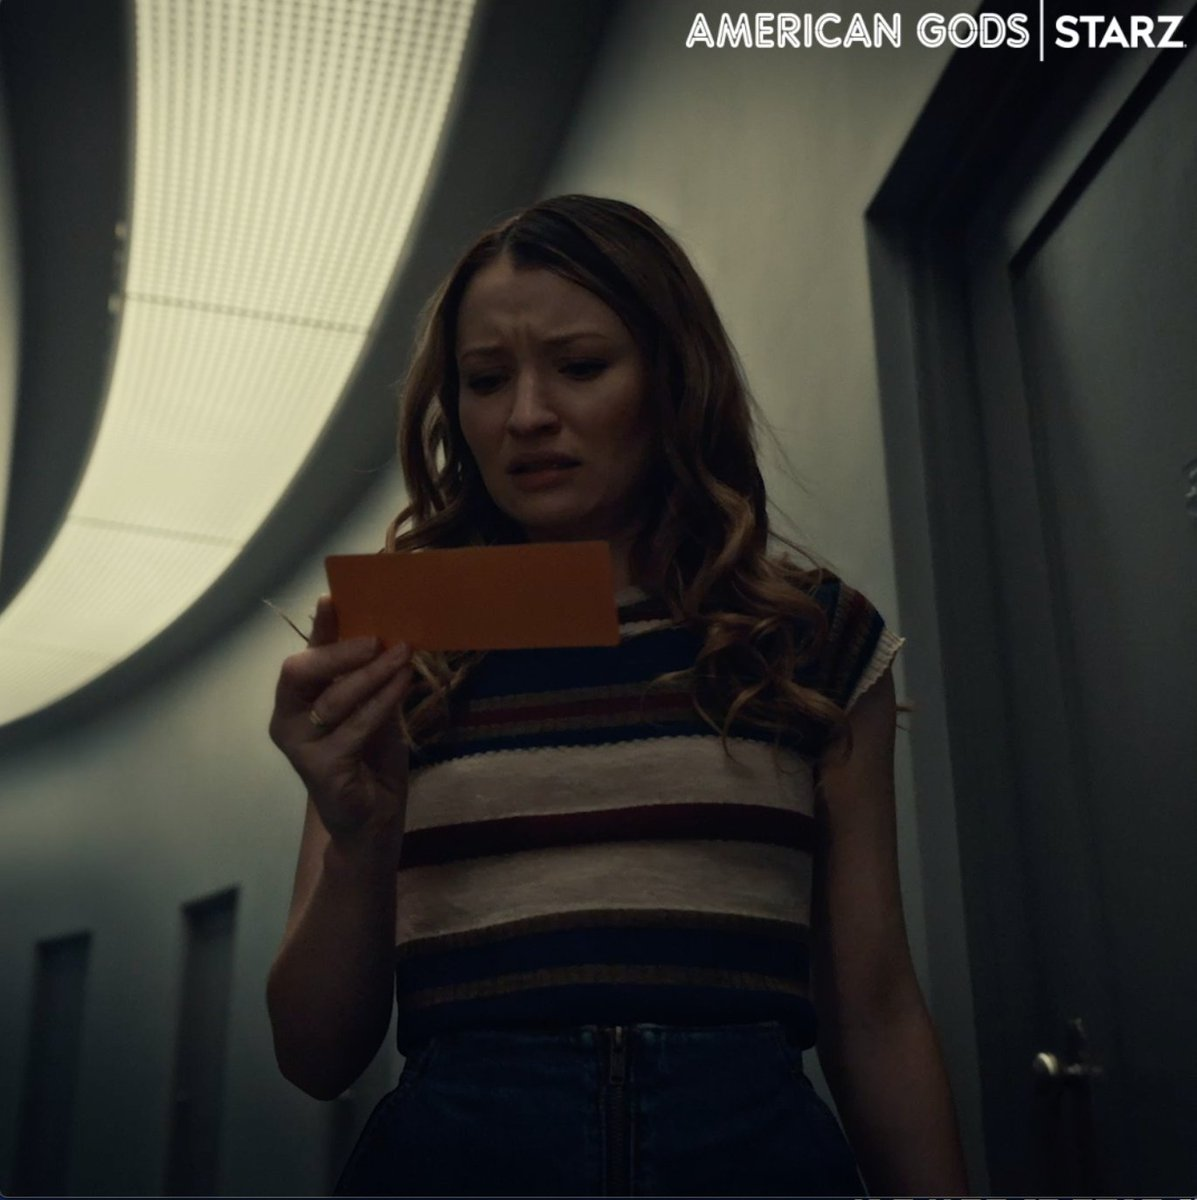 You don't have to tell me twice! Watch a new episode of #AmericanGods tonight on @STARZ or now on the app.